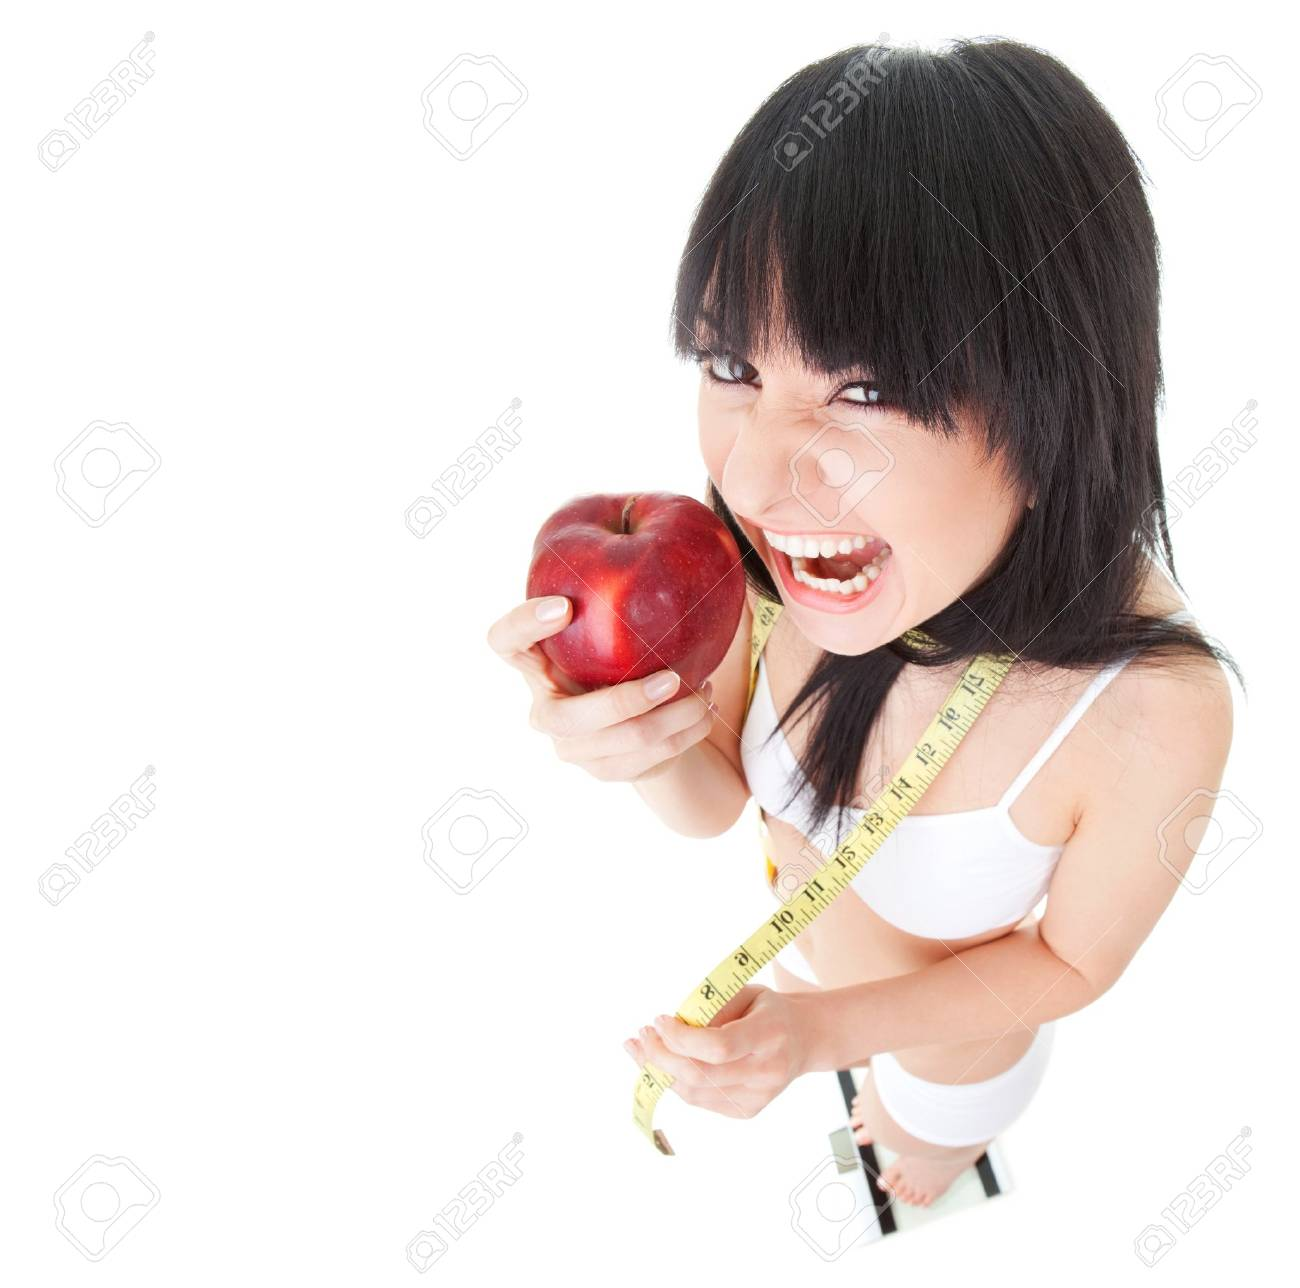 Fun woman with red apple and measure tape on the glass scales Stock Photo - 8311668